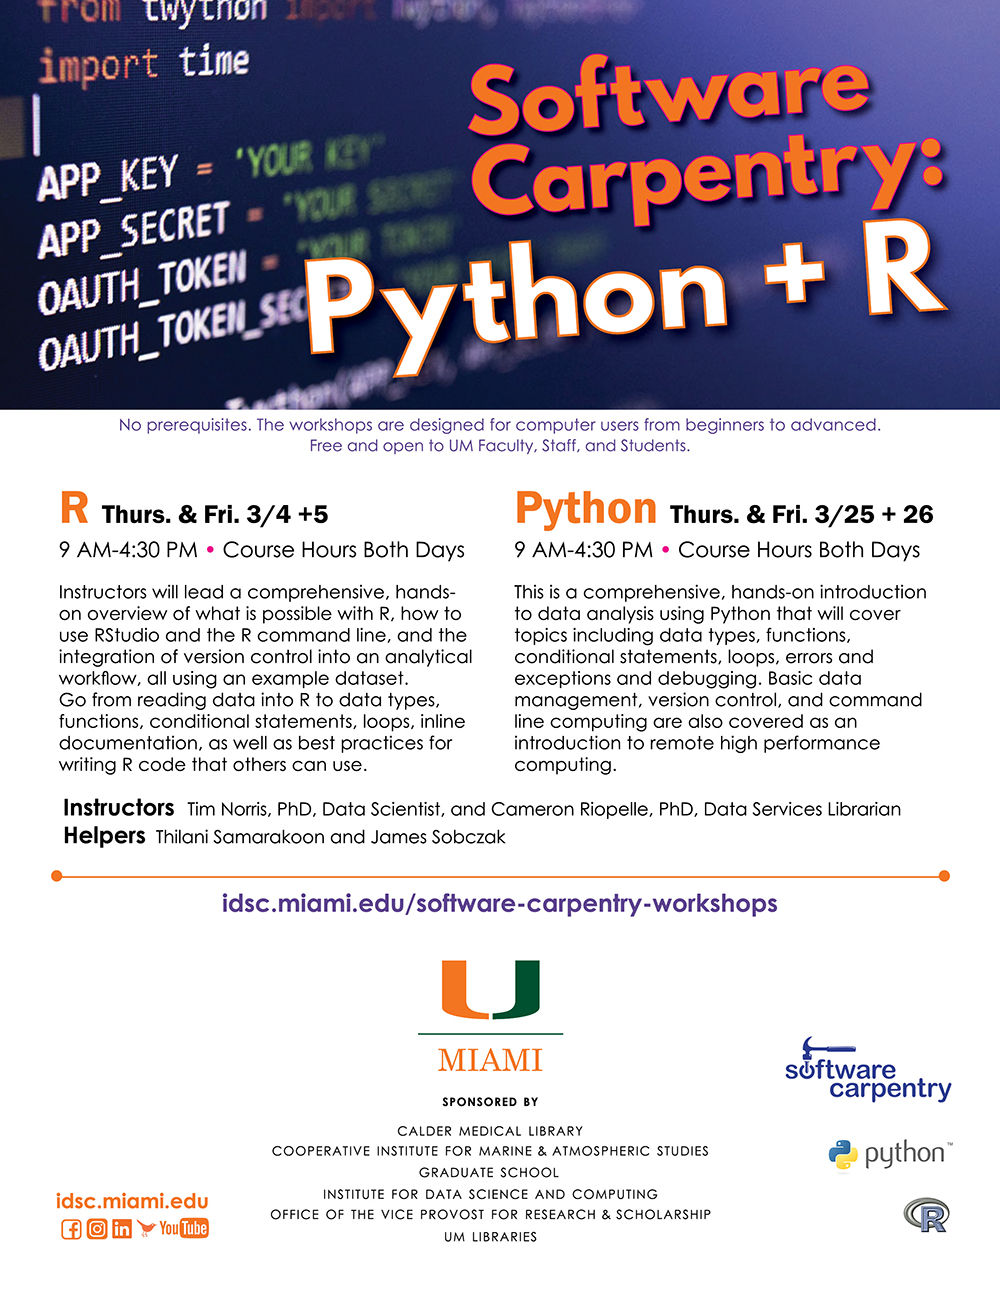 University of Miami Institute for Data Science and Computing Software Carpentry R + Python Workshop FLYER